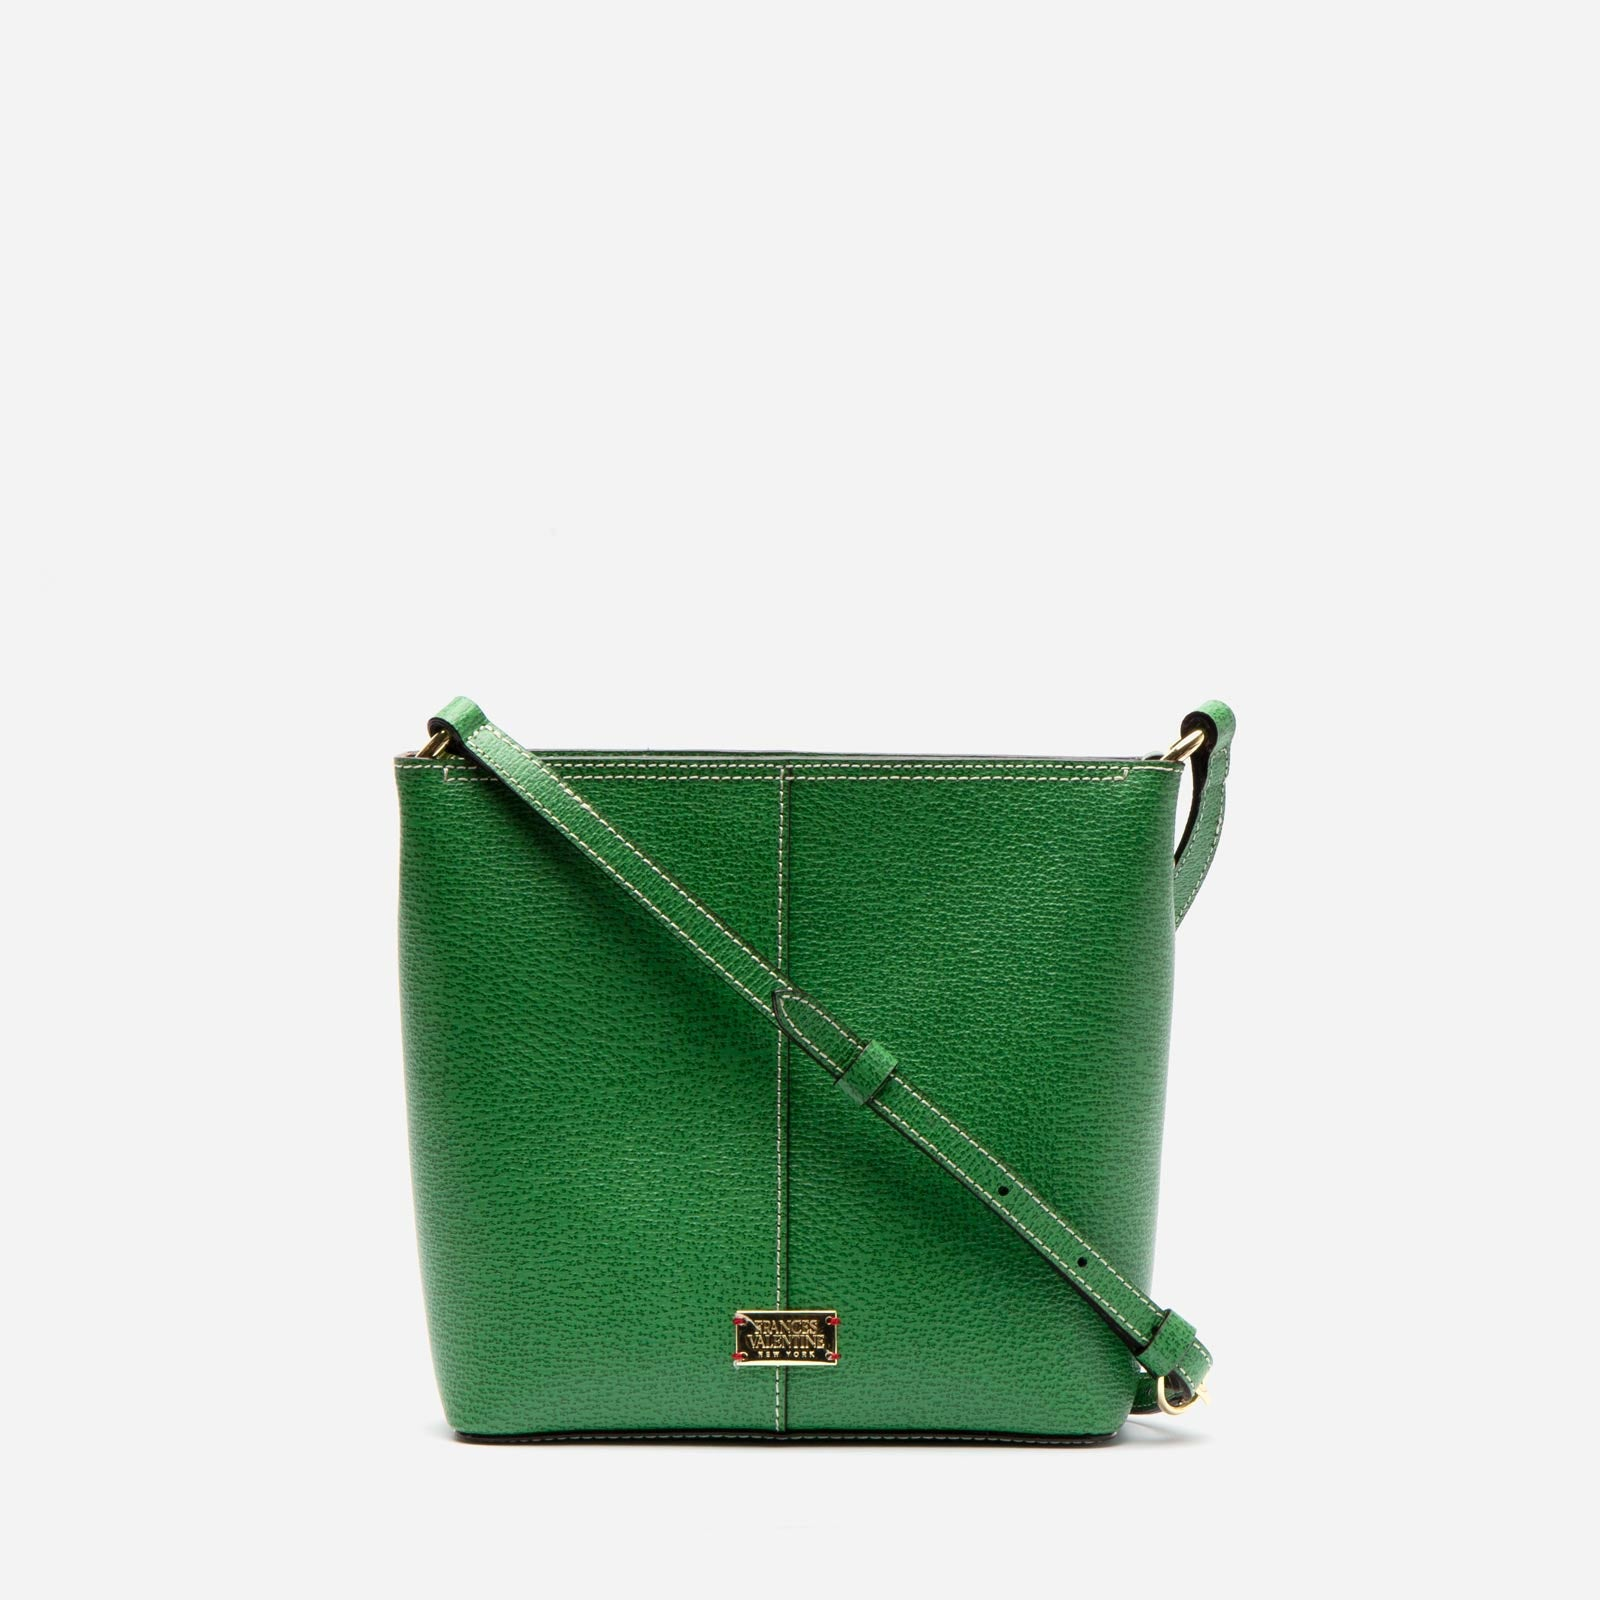 Small Finn Boarskin Leather Green - Frances Valentine